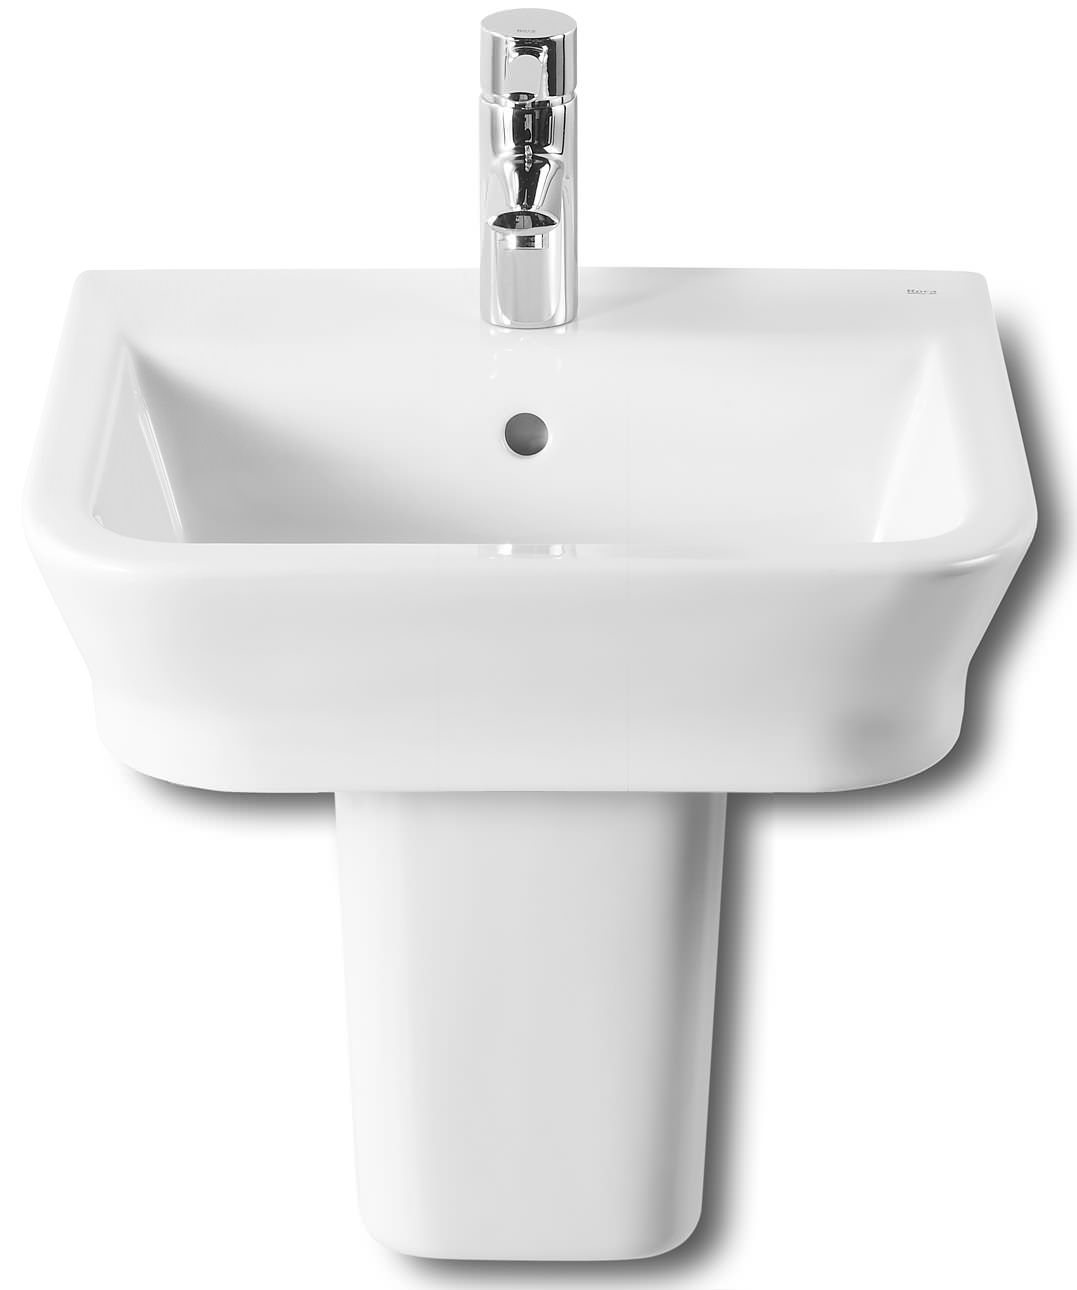 roca bathroom sinks roca the gap 450 x 420mm wall hung basin with no tap 14235